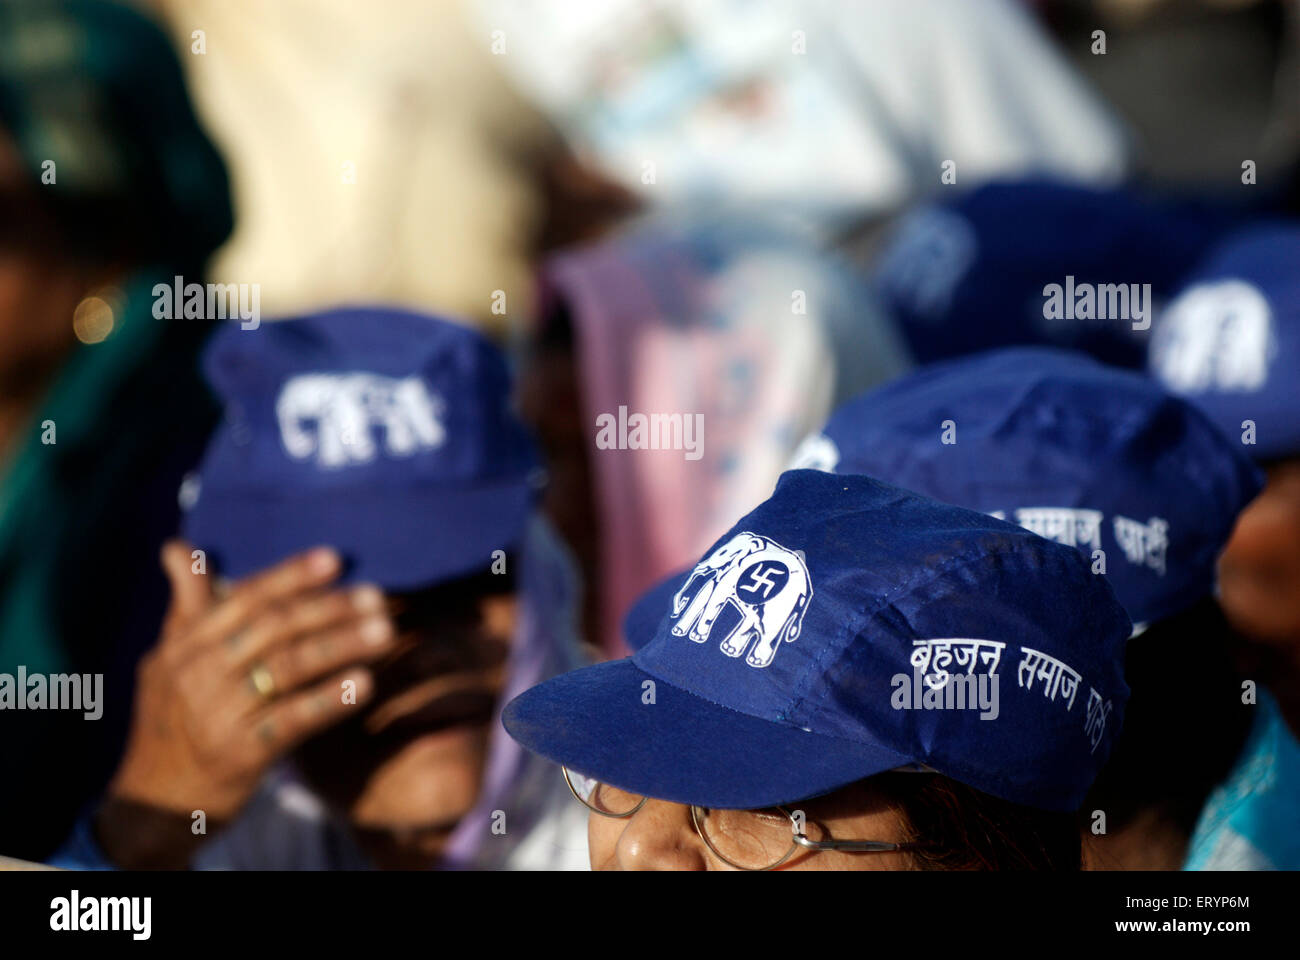 Supporters in BSP Bahujan Samajwadi party logo cap during